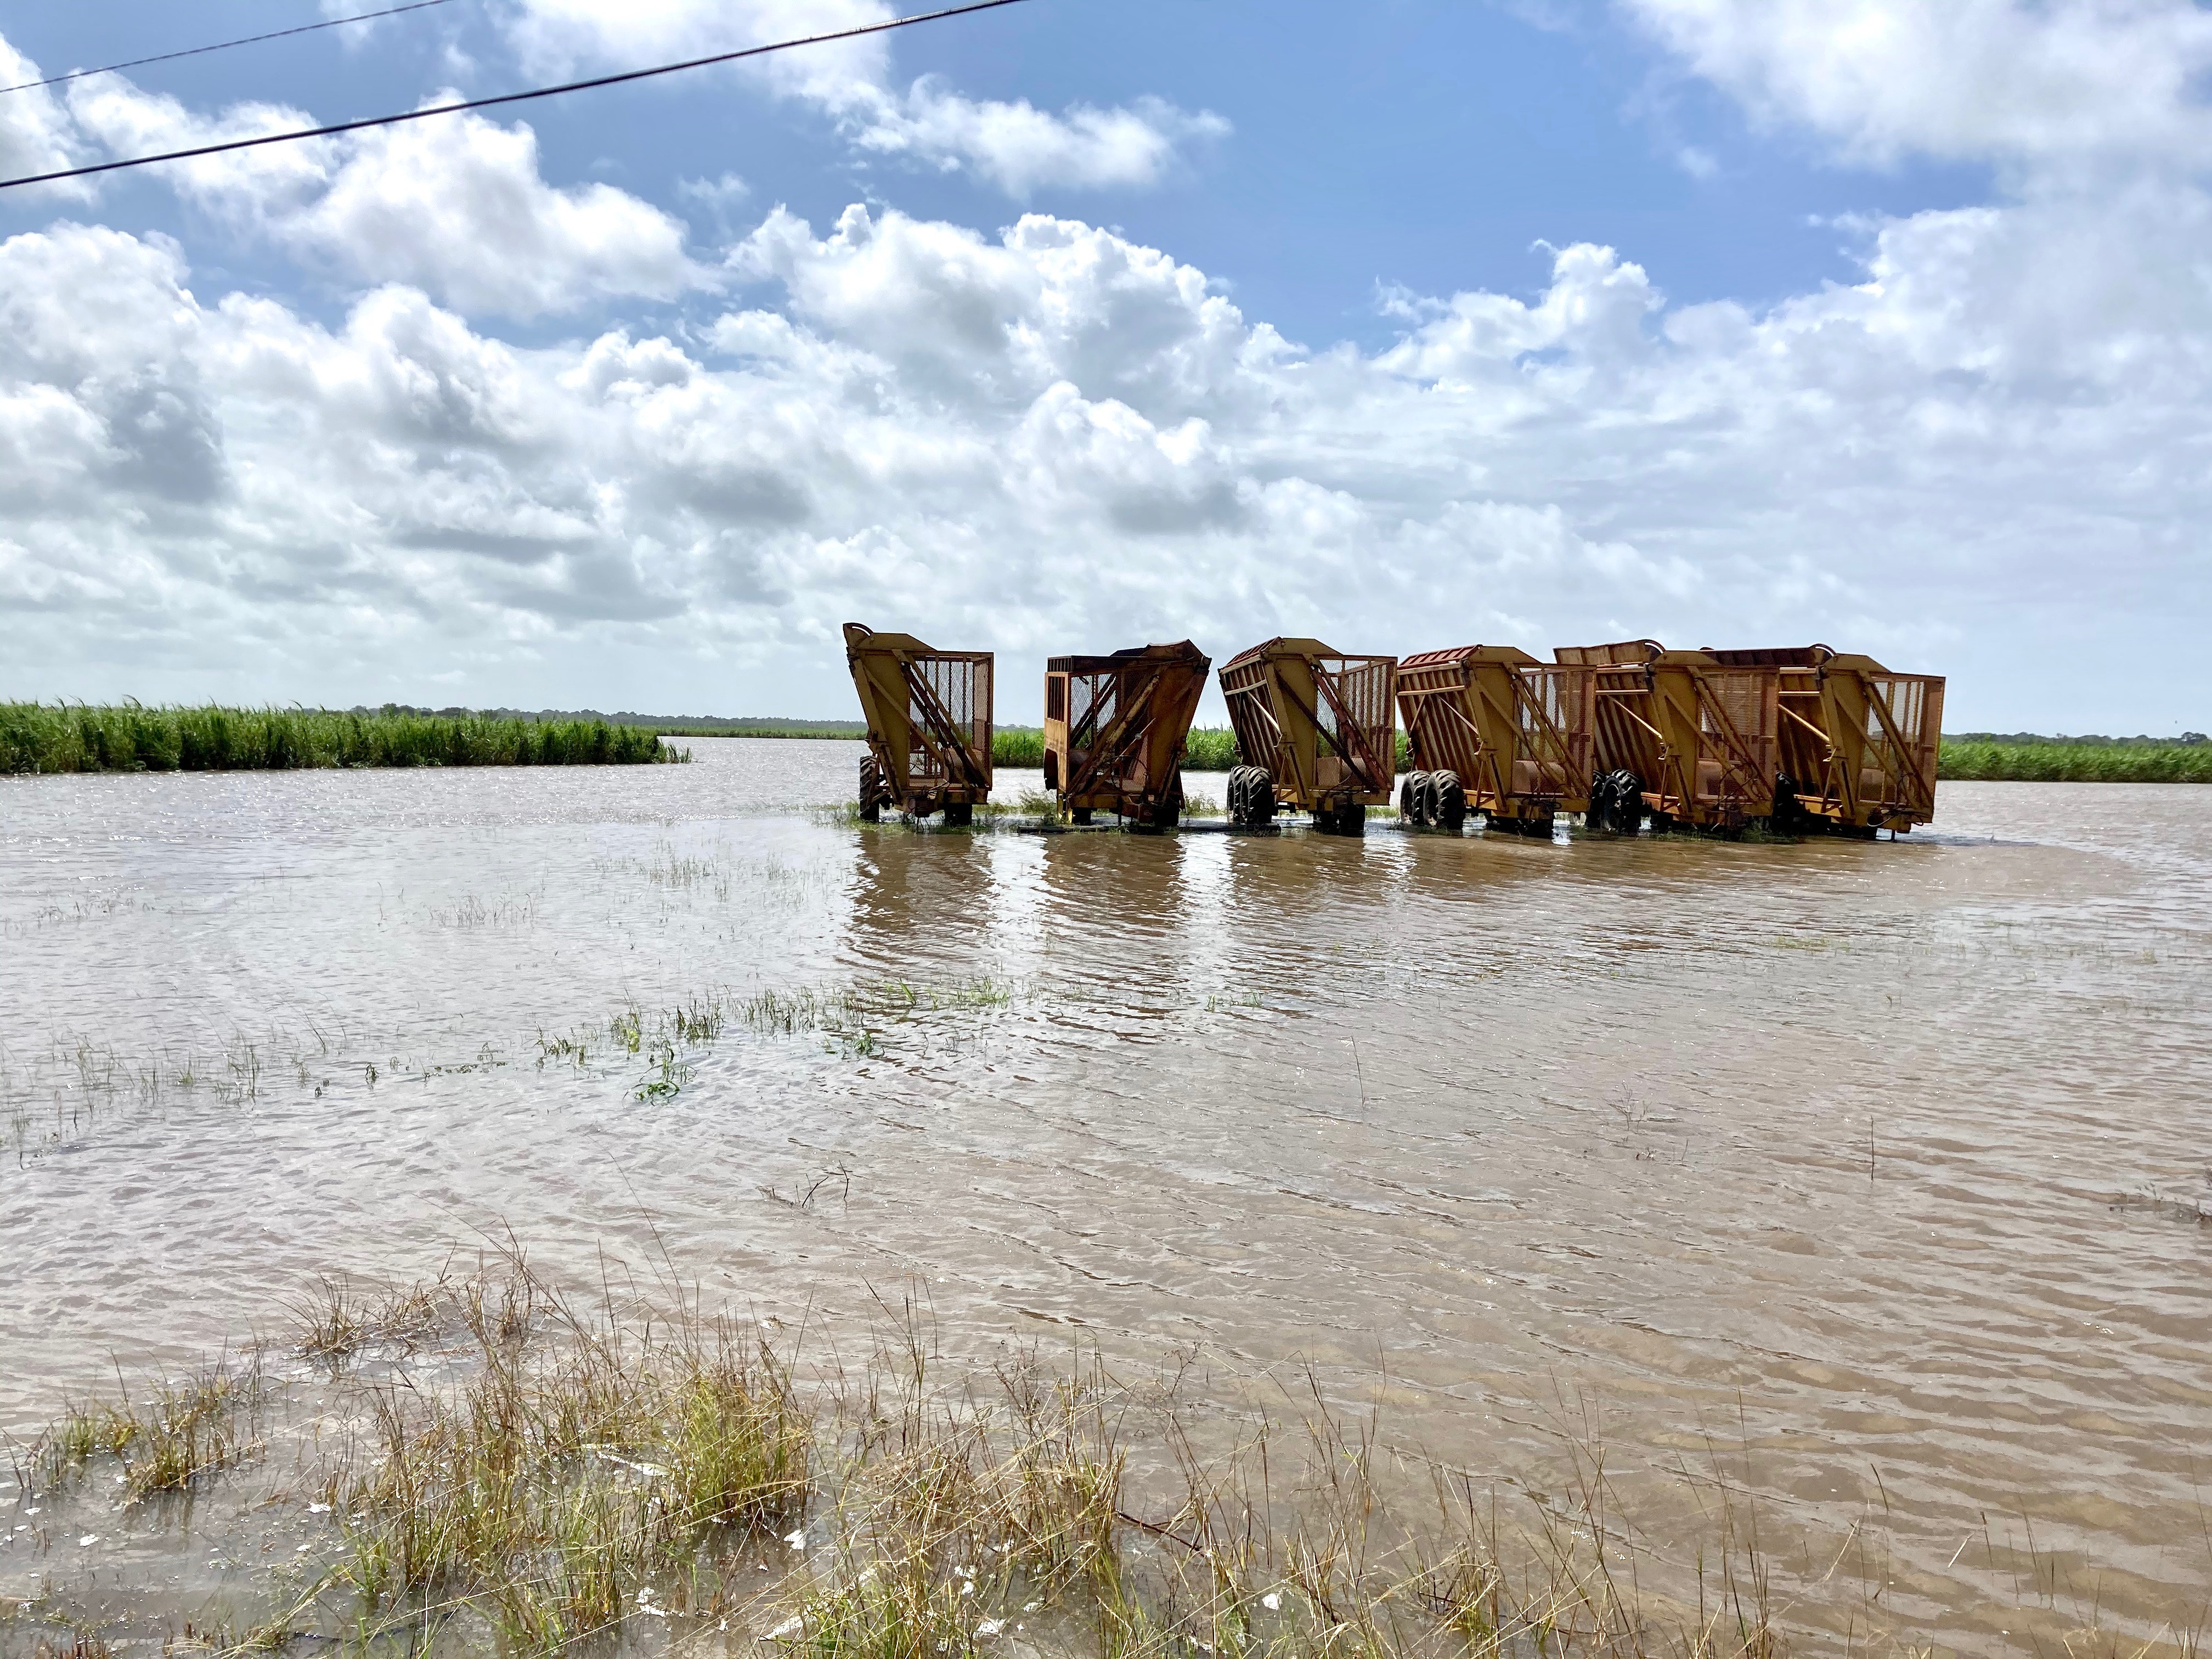 Cane carts in flooded field